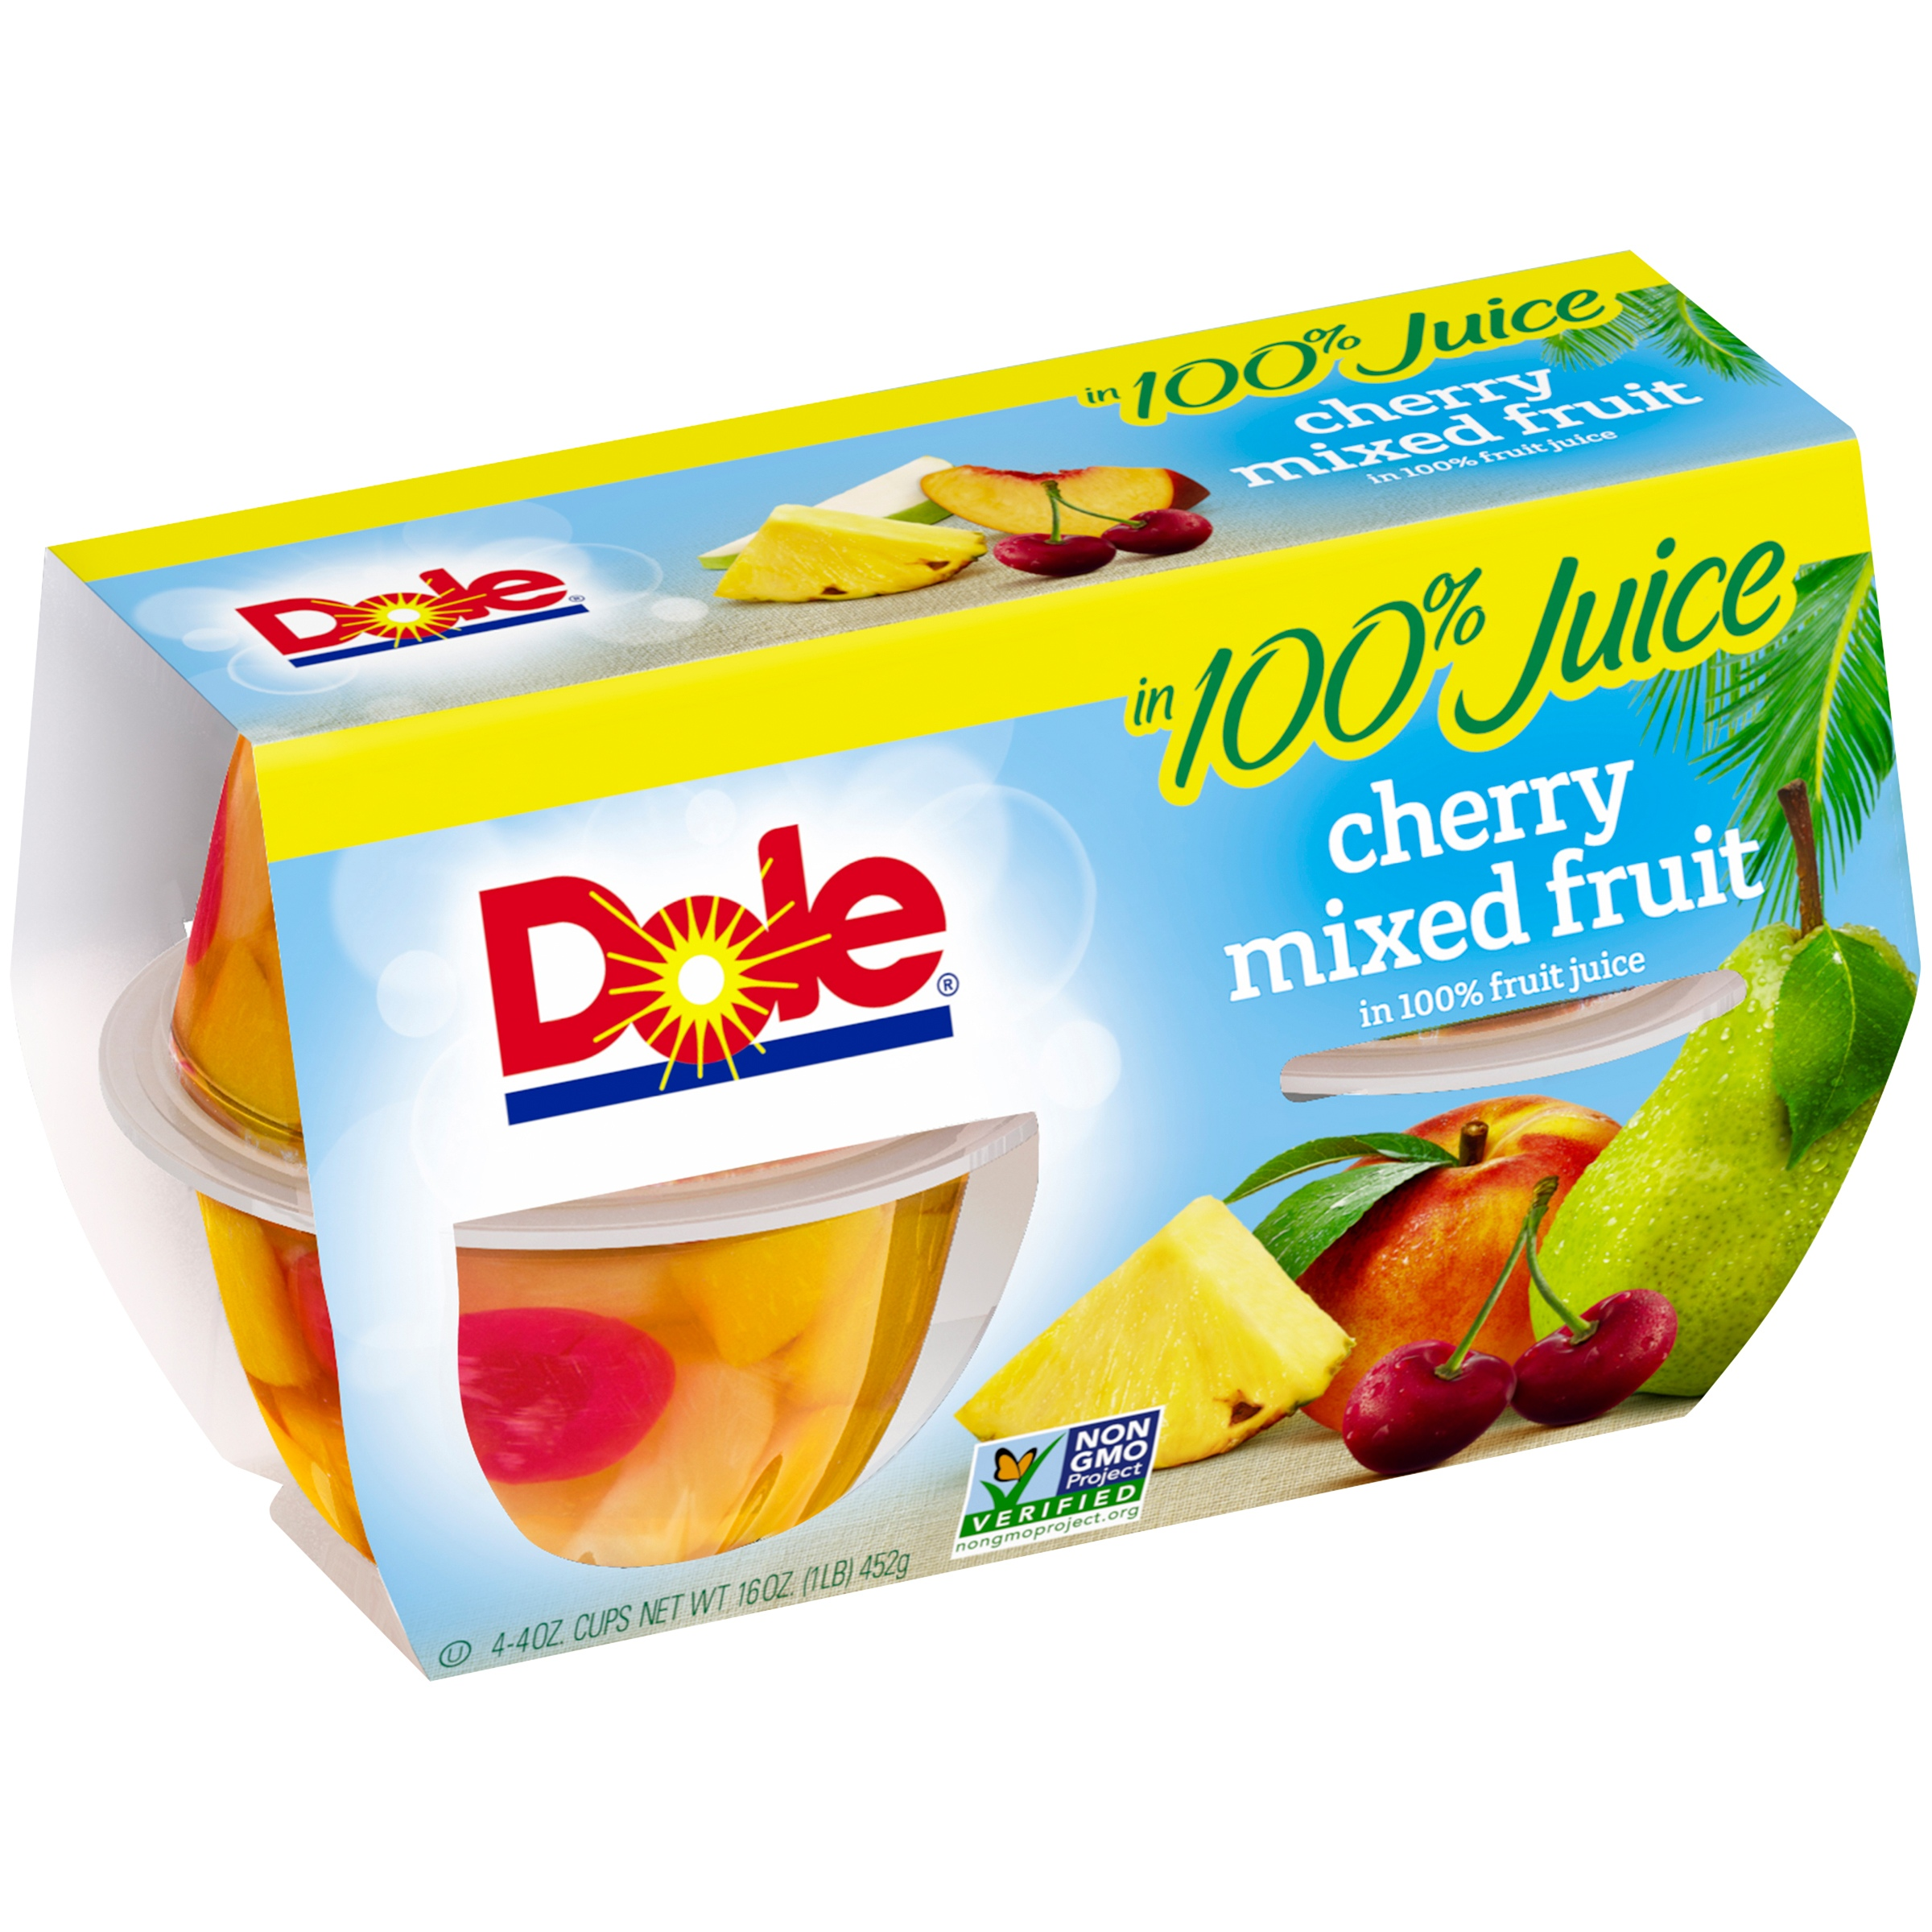 Dole Cherry Mixed Fruit in 100% Fruit Juice, 4-4 oz. Cups by Dole Packaged Foods, LLC